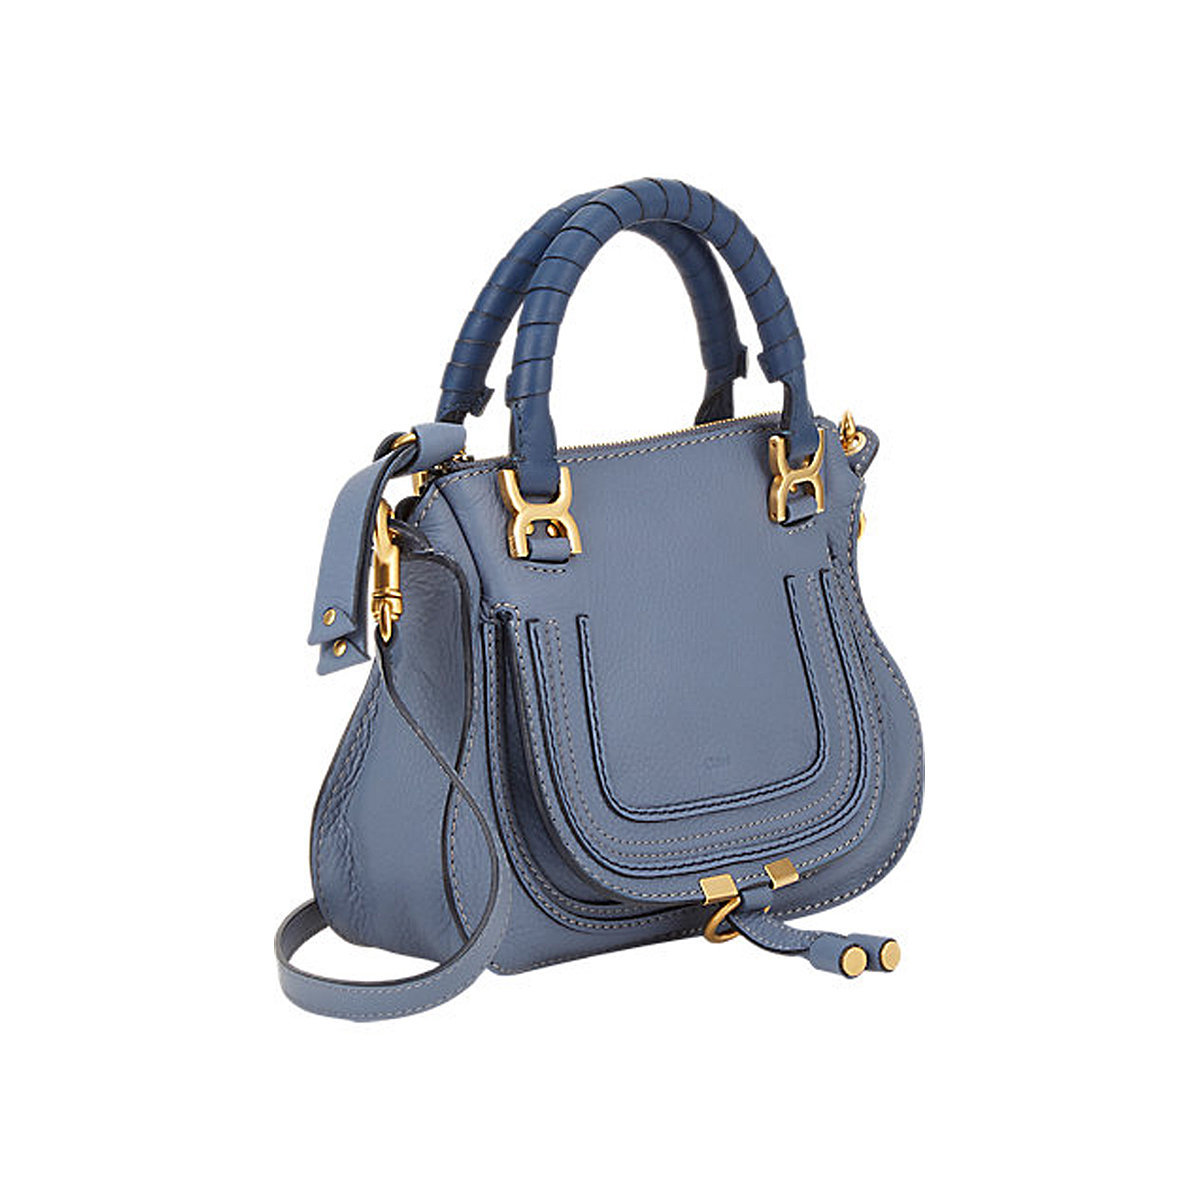 Chlo¨¦ Marcie Mini Satchel With Strap ($1,650) | The Ultimate Guide ...